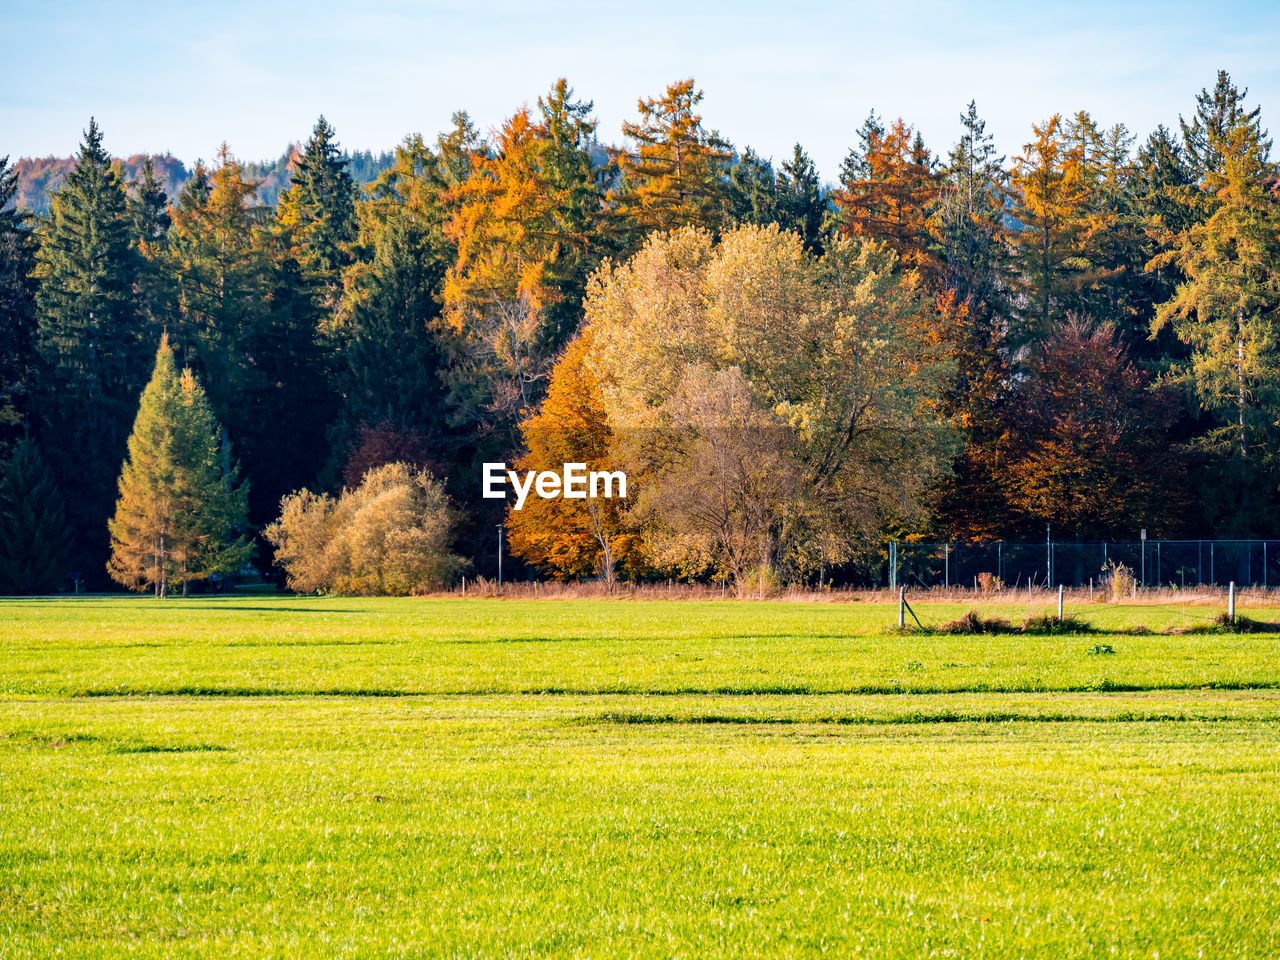 Trees on landscape during autumn